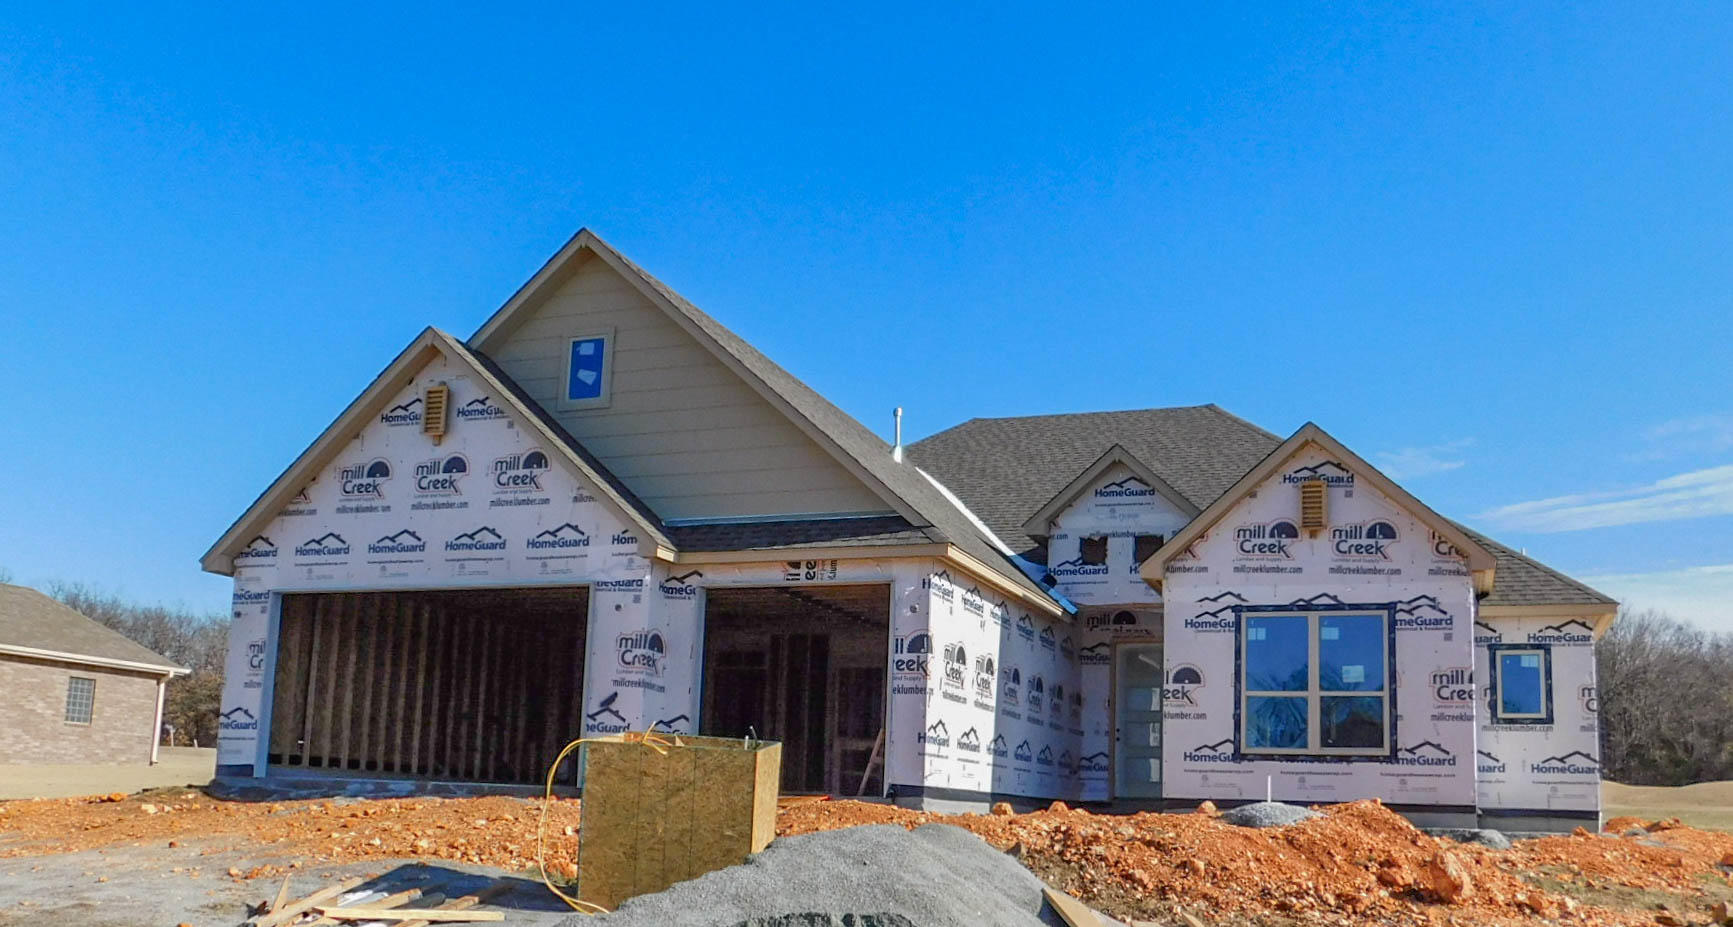 4929 Lost Cove Rd, Grove, OK 74344 - New Home Construction